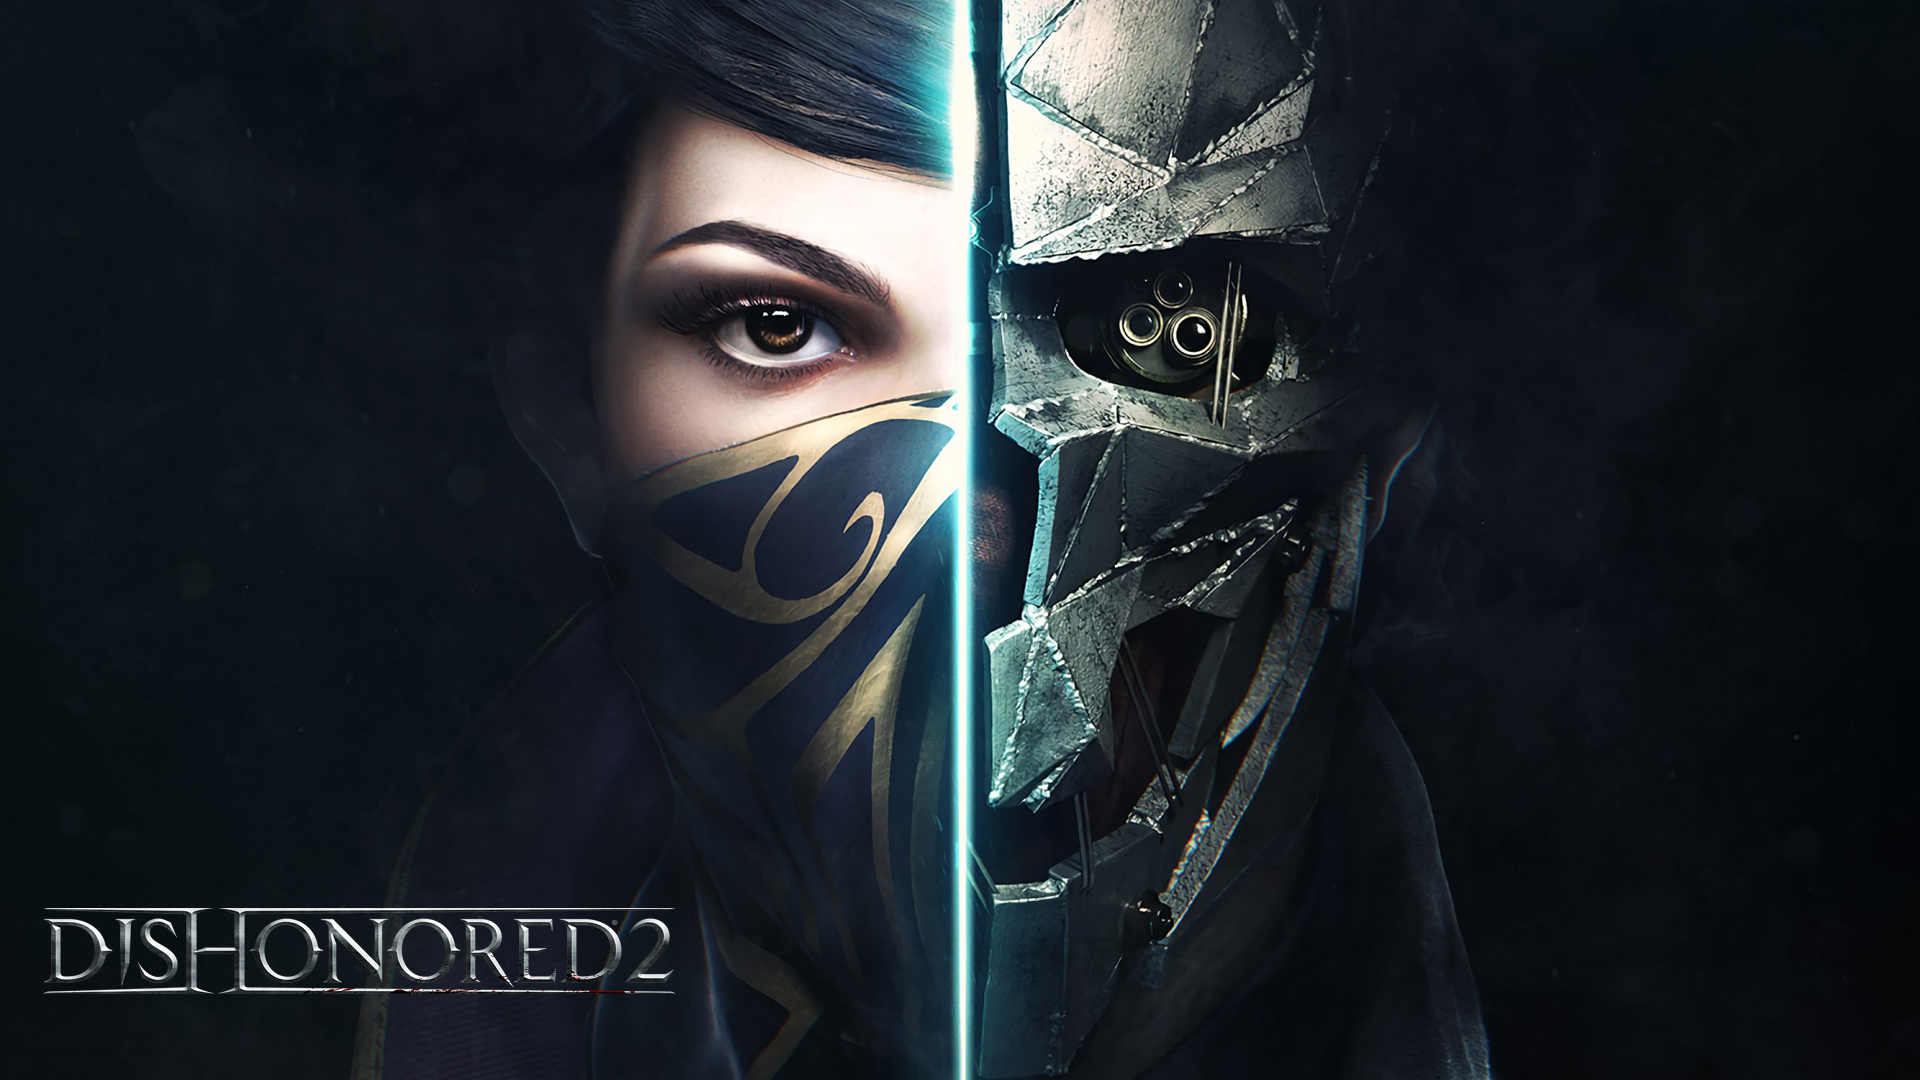 Dishonored 2 Free To Play Cover